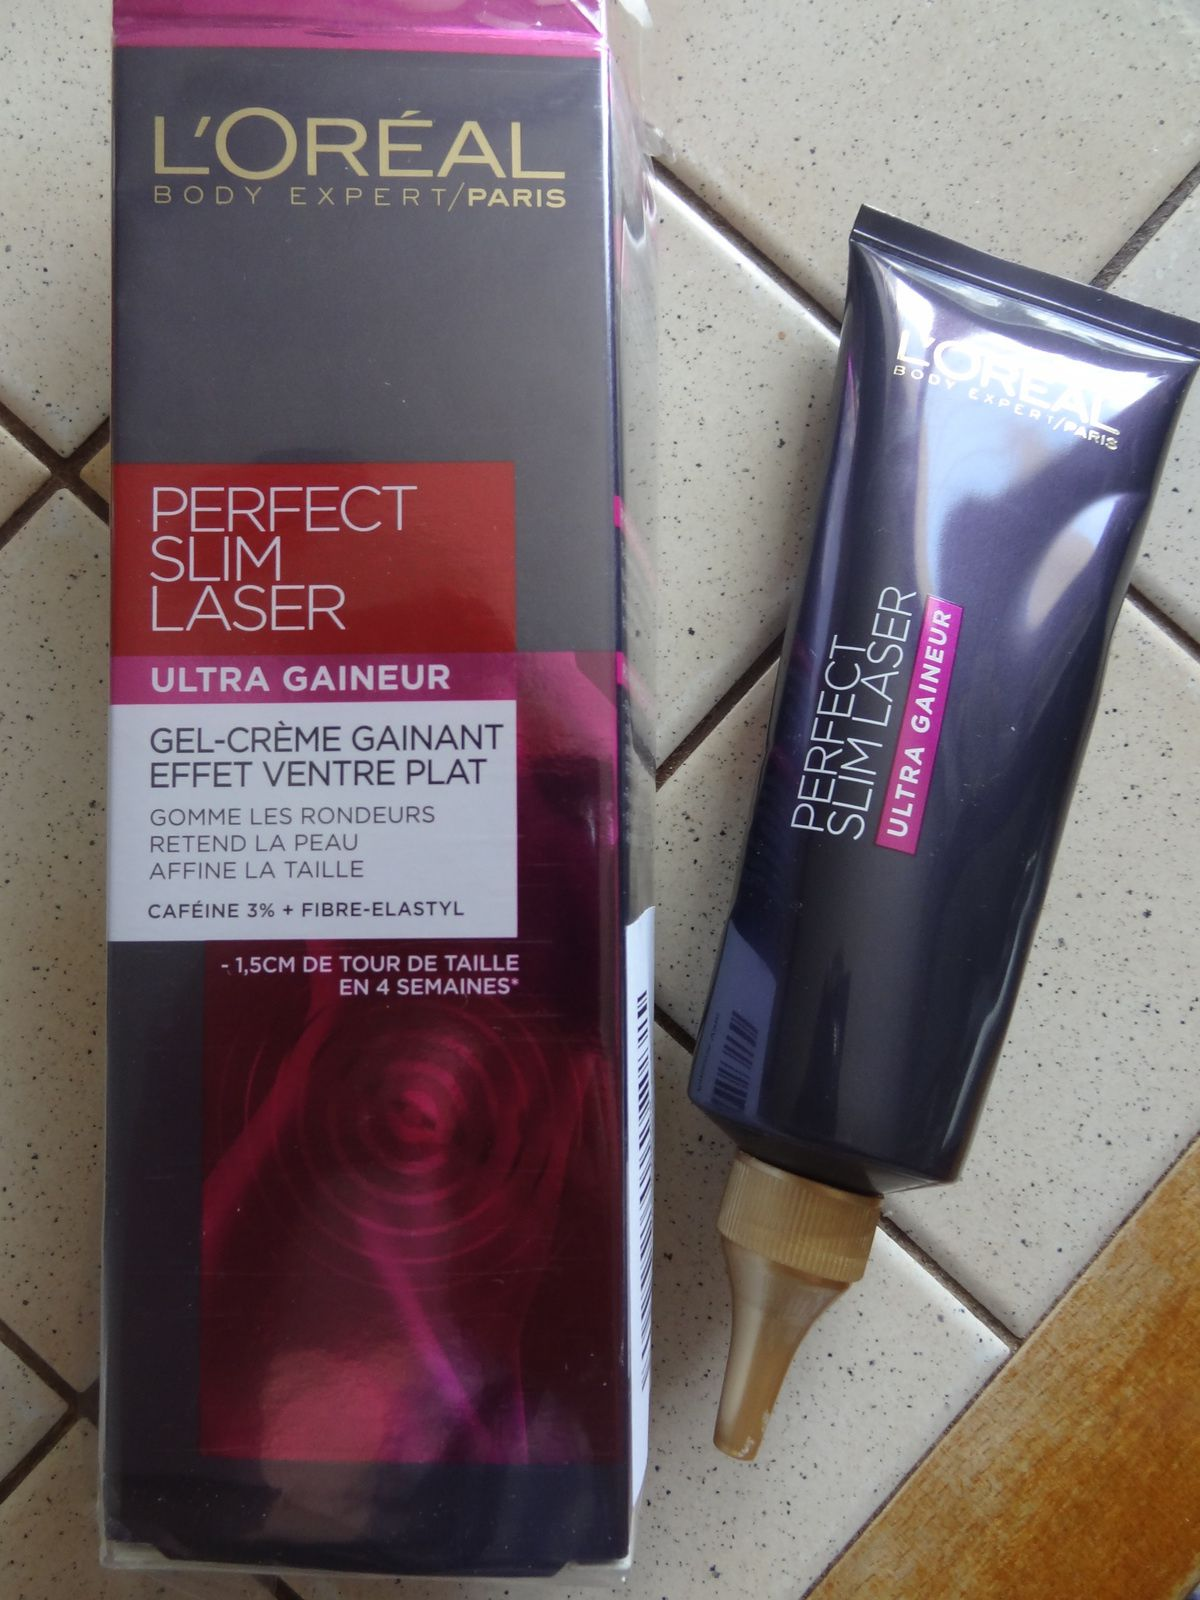 Perfect slim laser L'Oréal